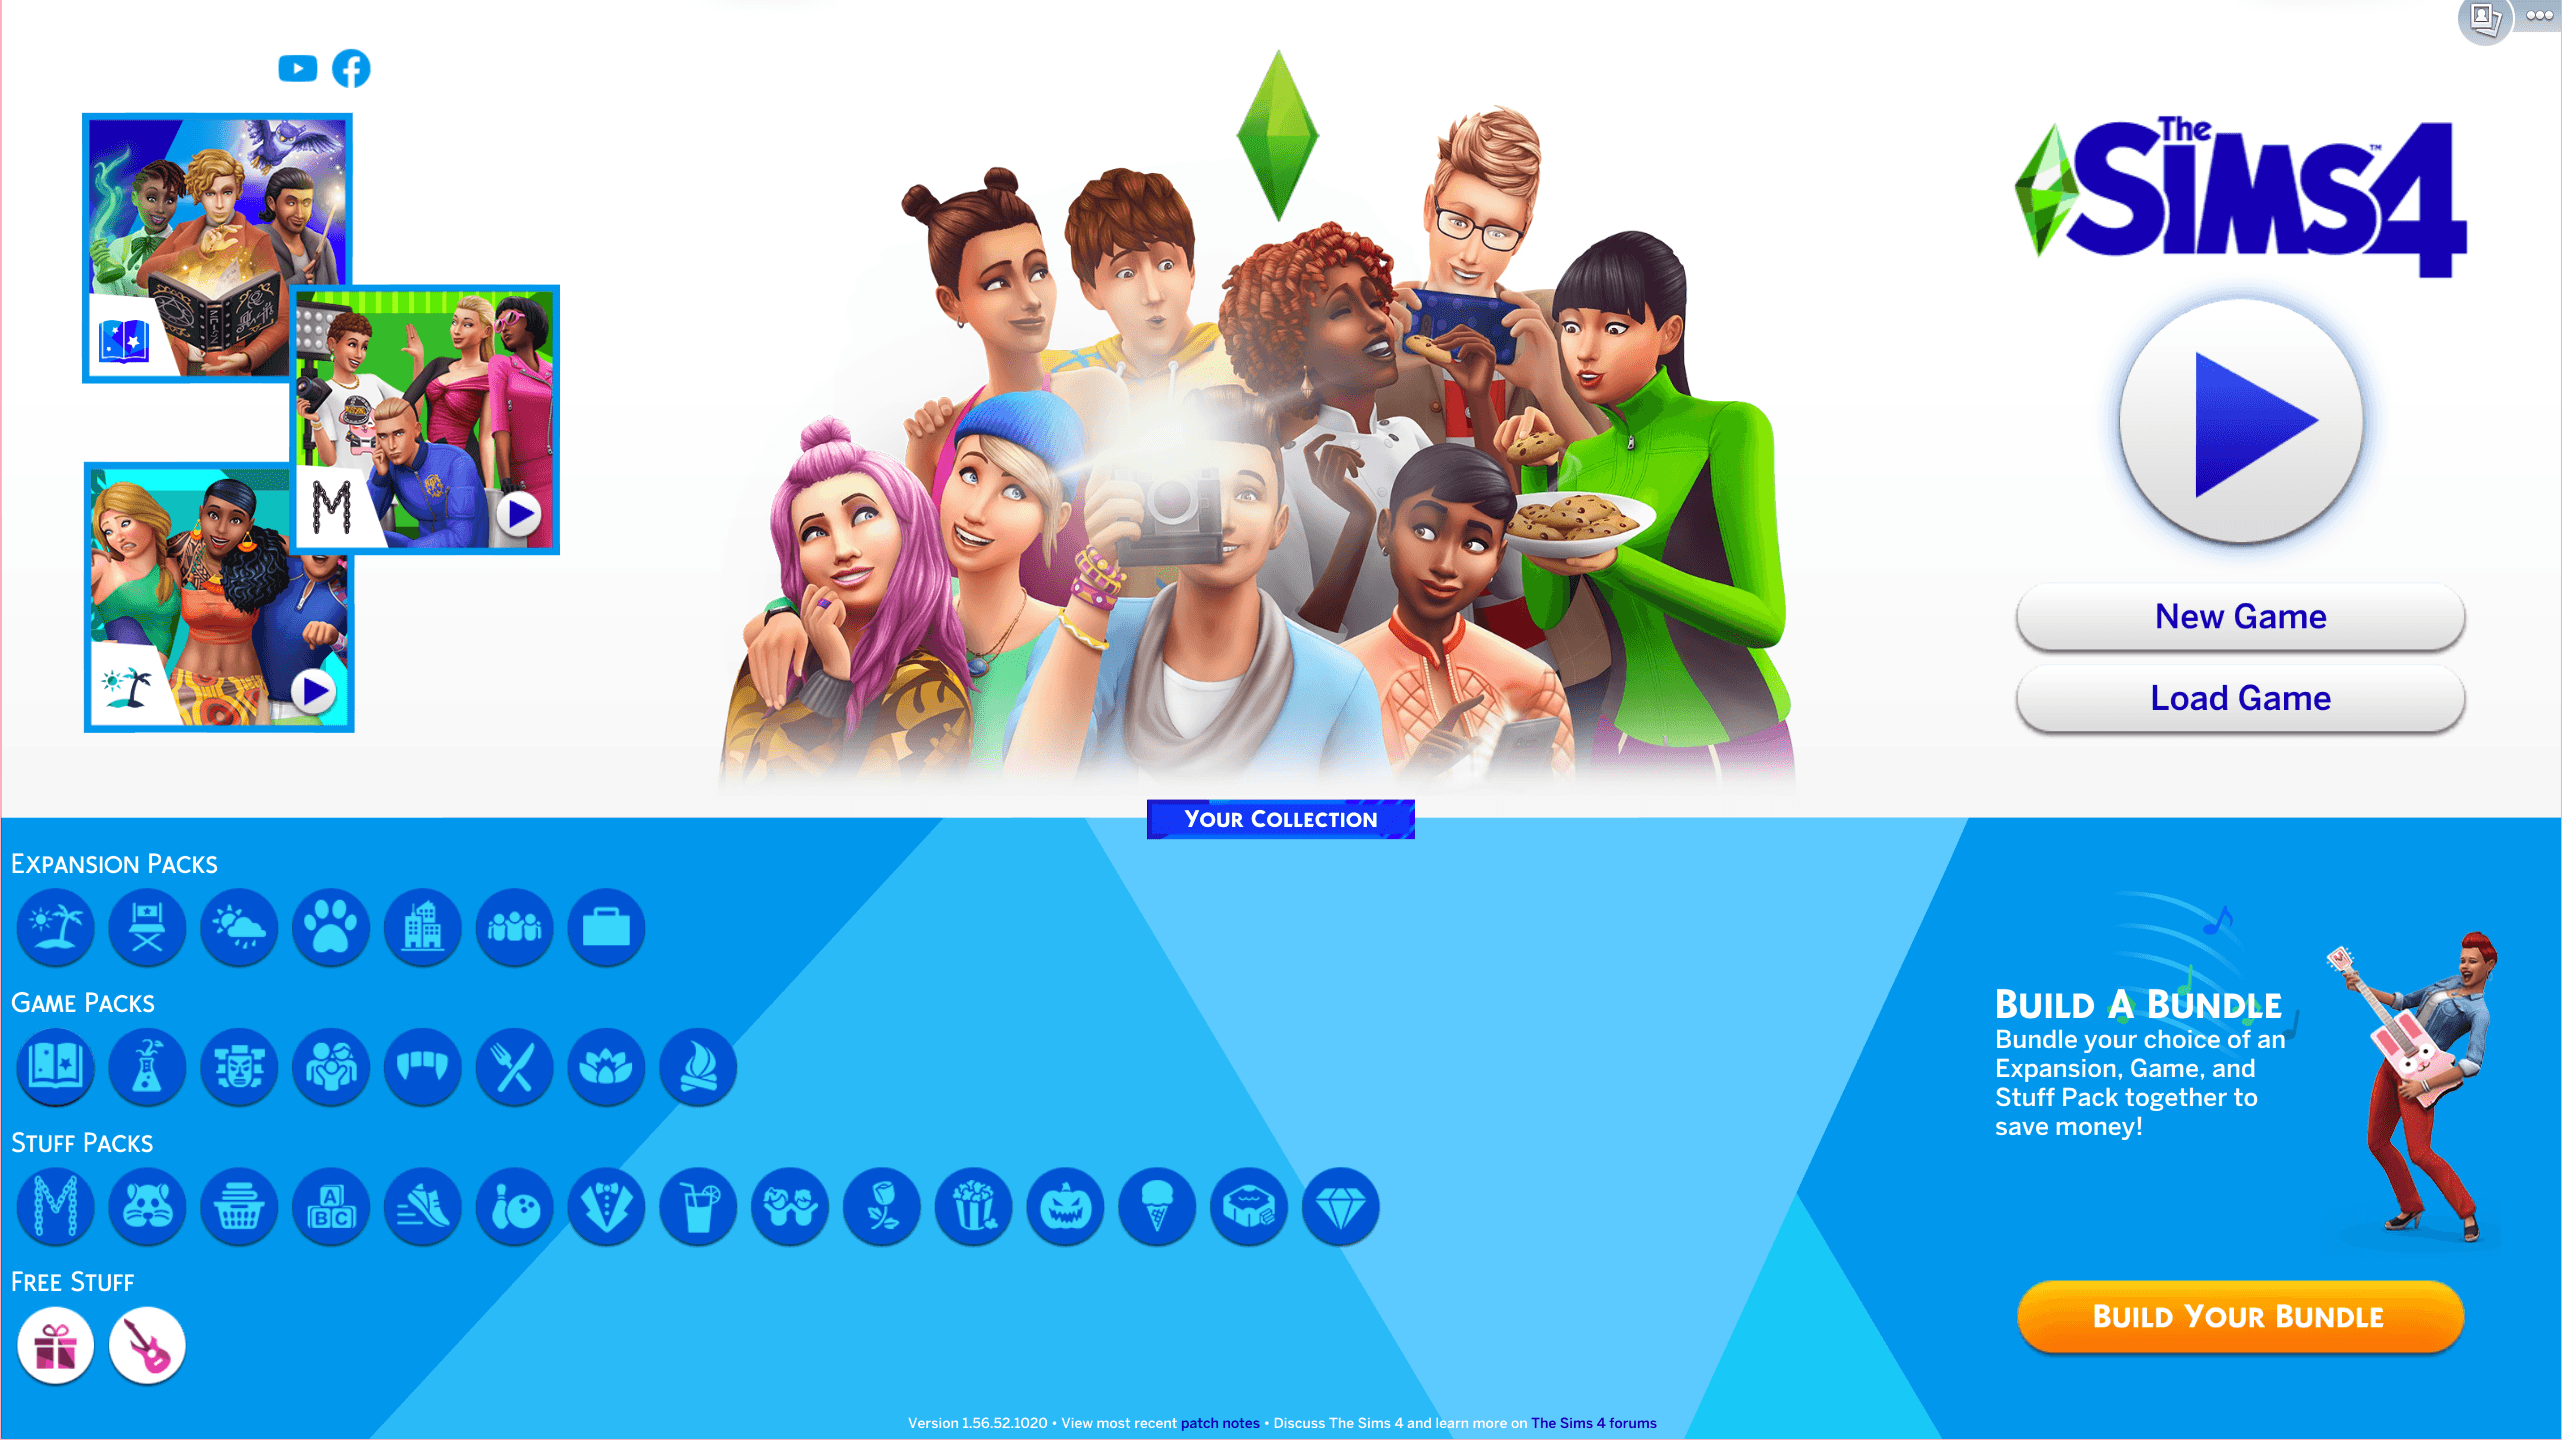 The Sims 4 1.56.52.1020 All in One Customizable [Anadius] - The Sim Architect